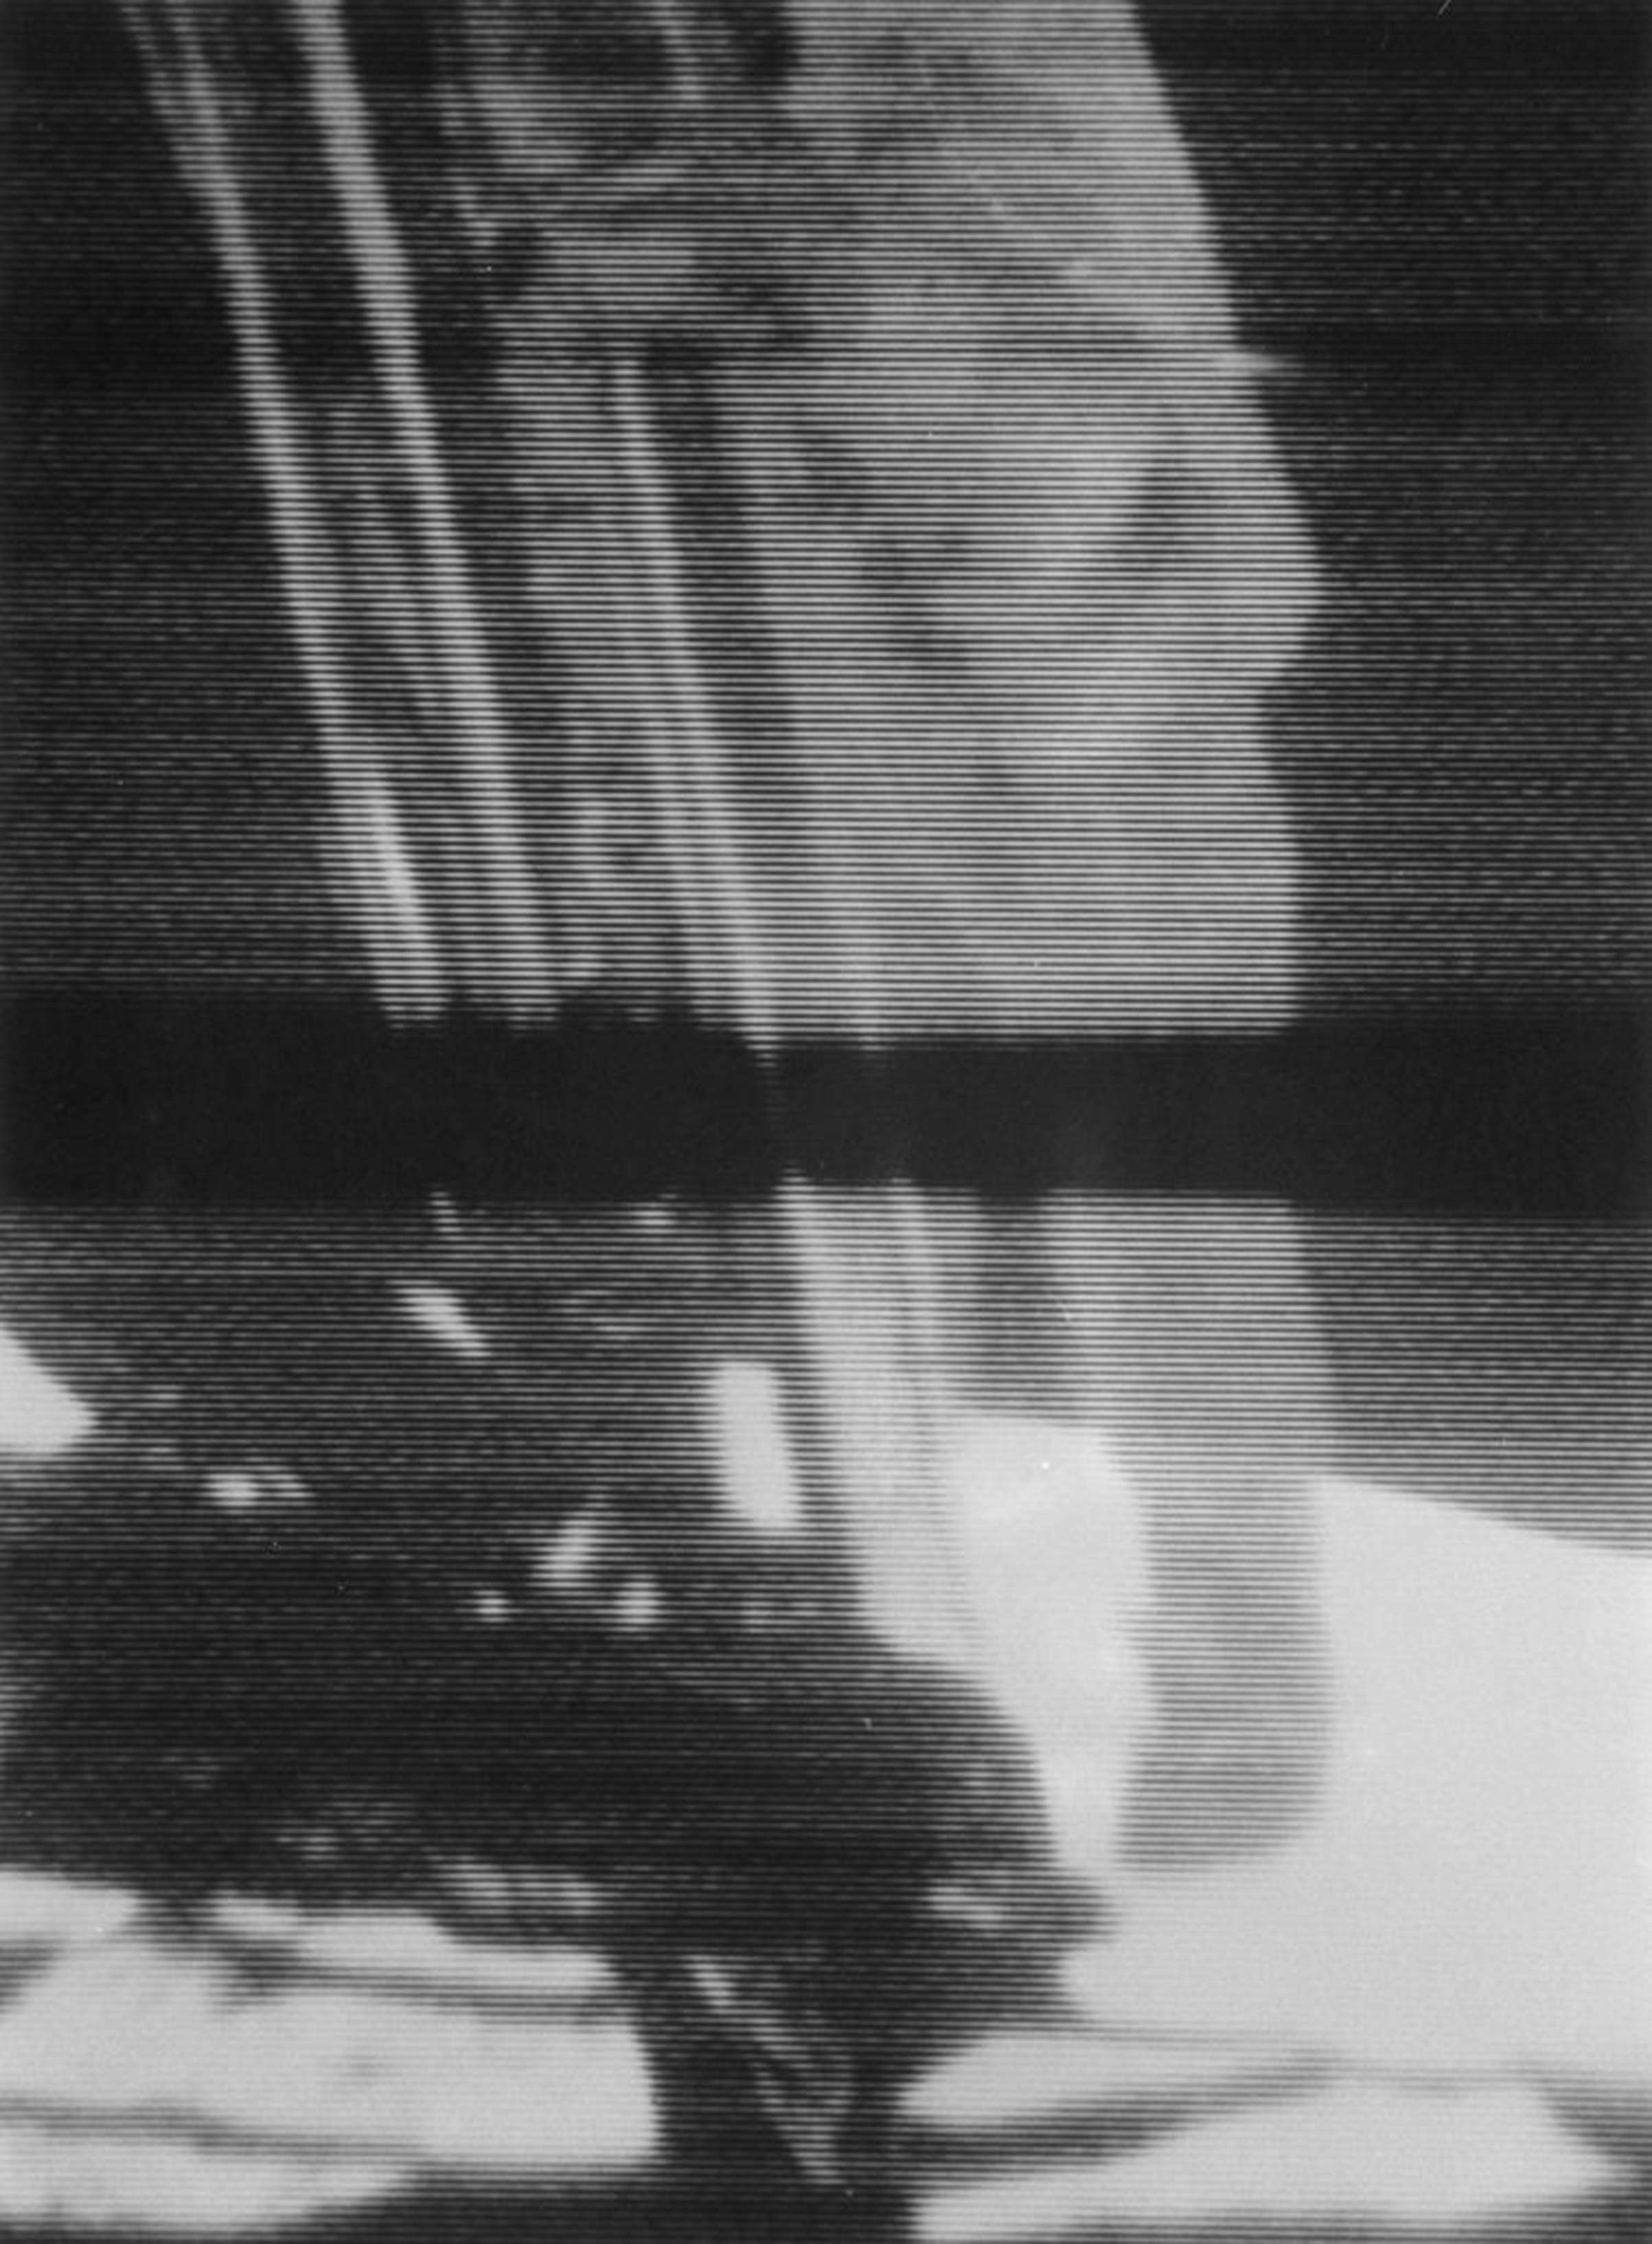 A screenshot from video footage of Commander Neil Armstrong climbing down the ladder of the Lunar Module (LM) the 'Eagle,' to become the first man to set foot on the Moon on July 20, 1969, during NASA's Apollo 11 lunar landing mission.